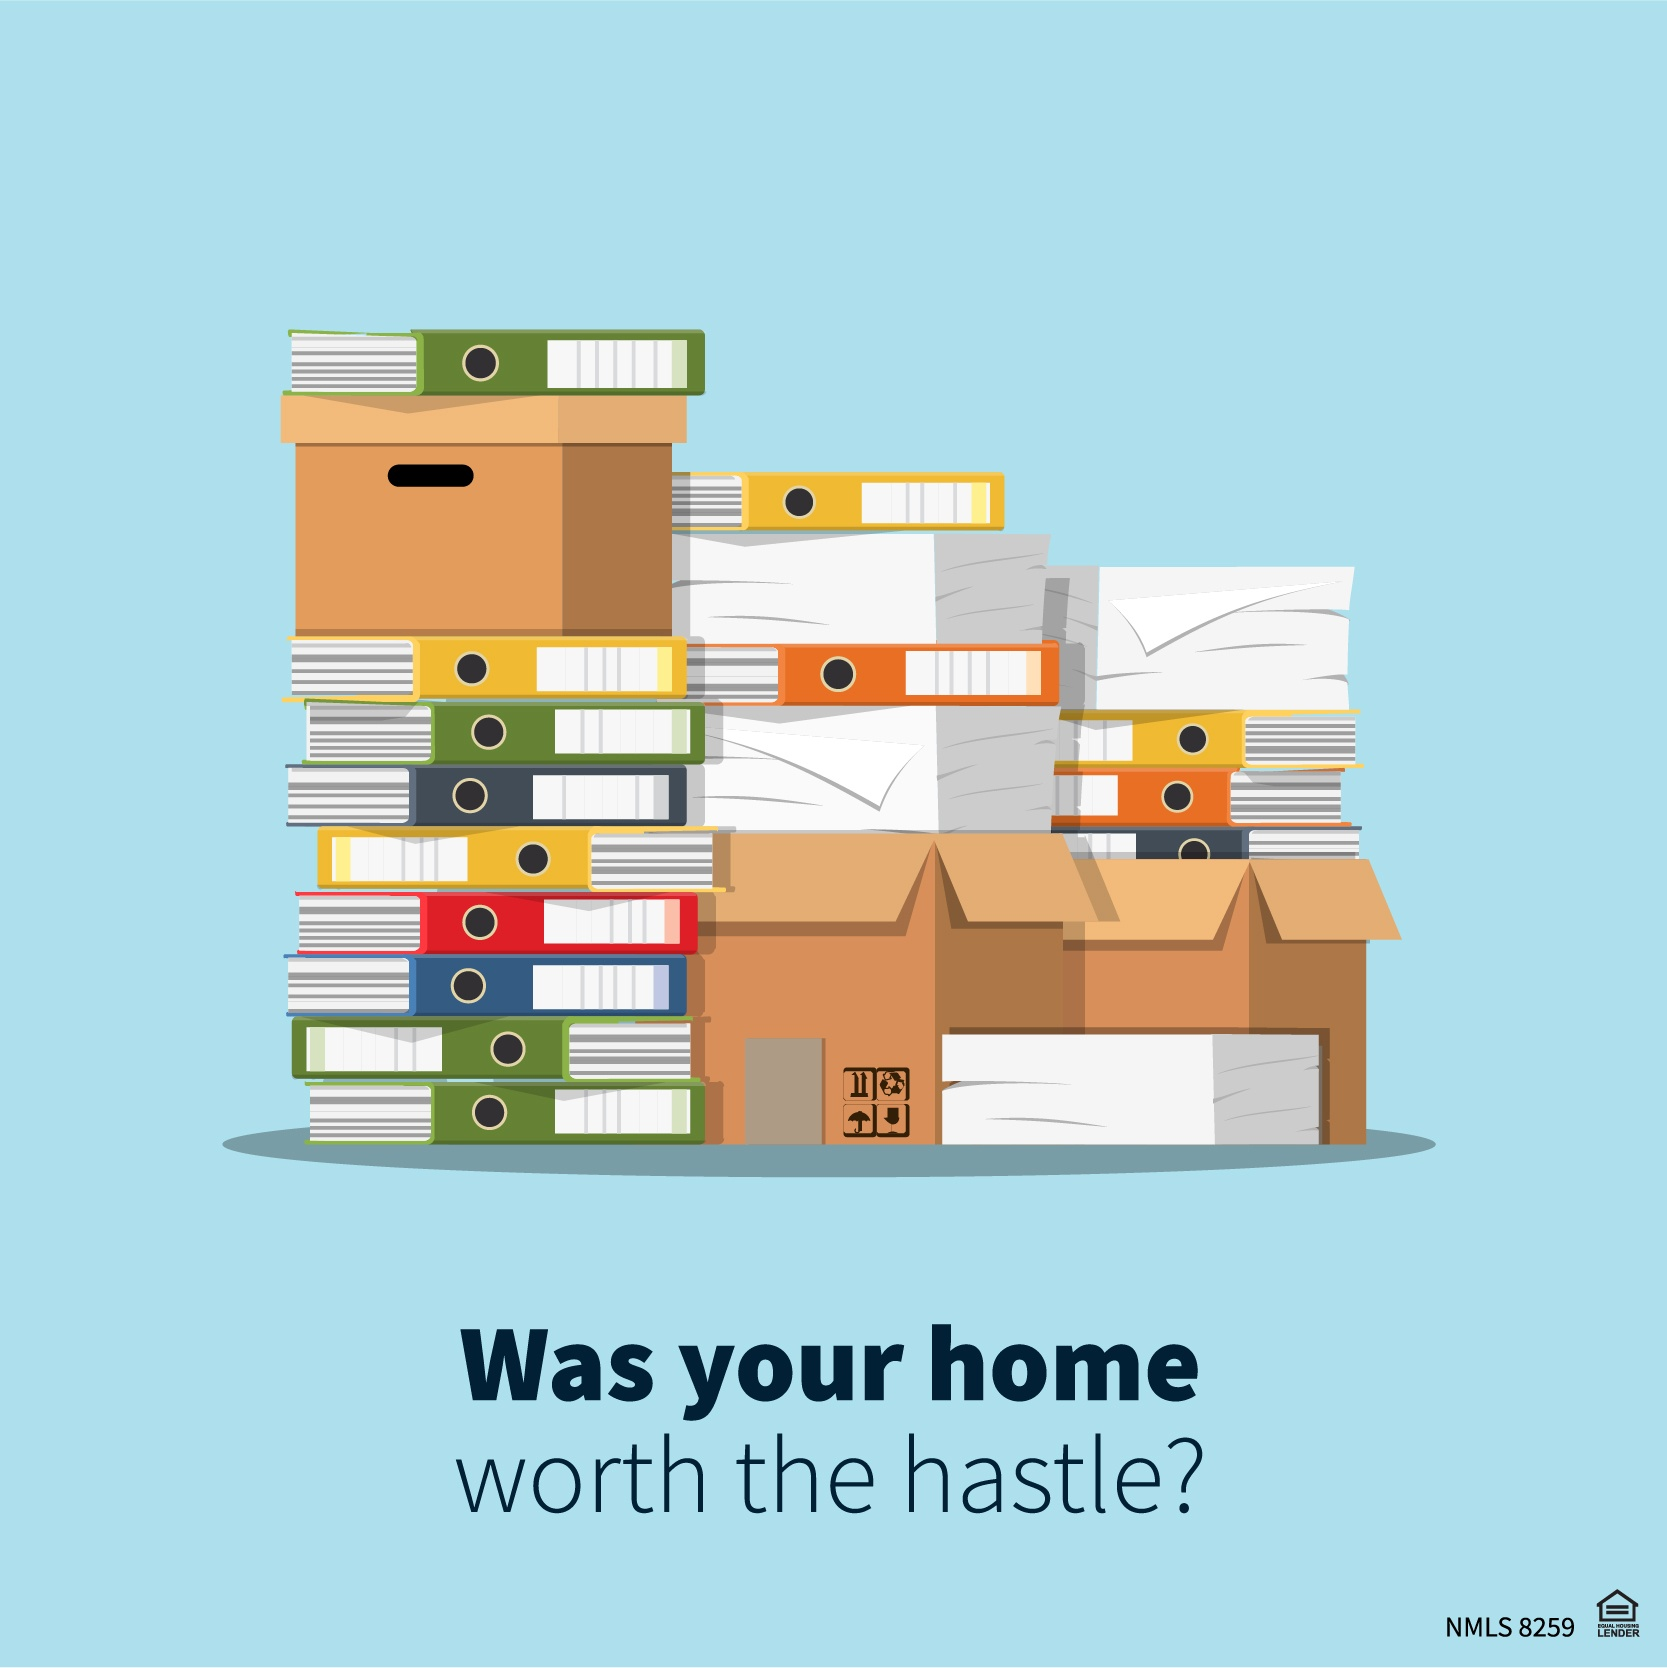 Home worth the hastle blog-01